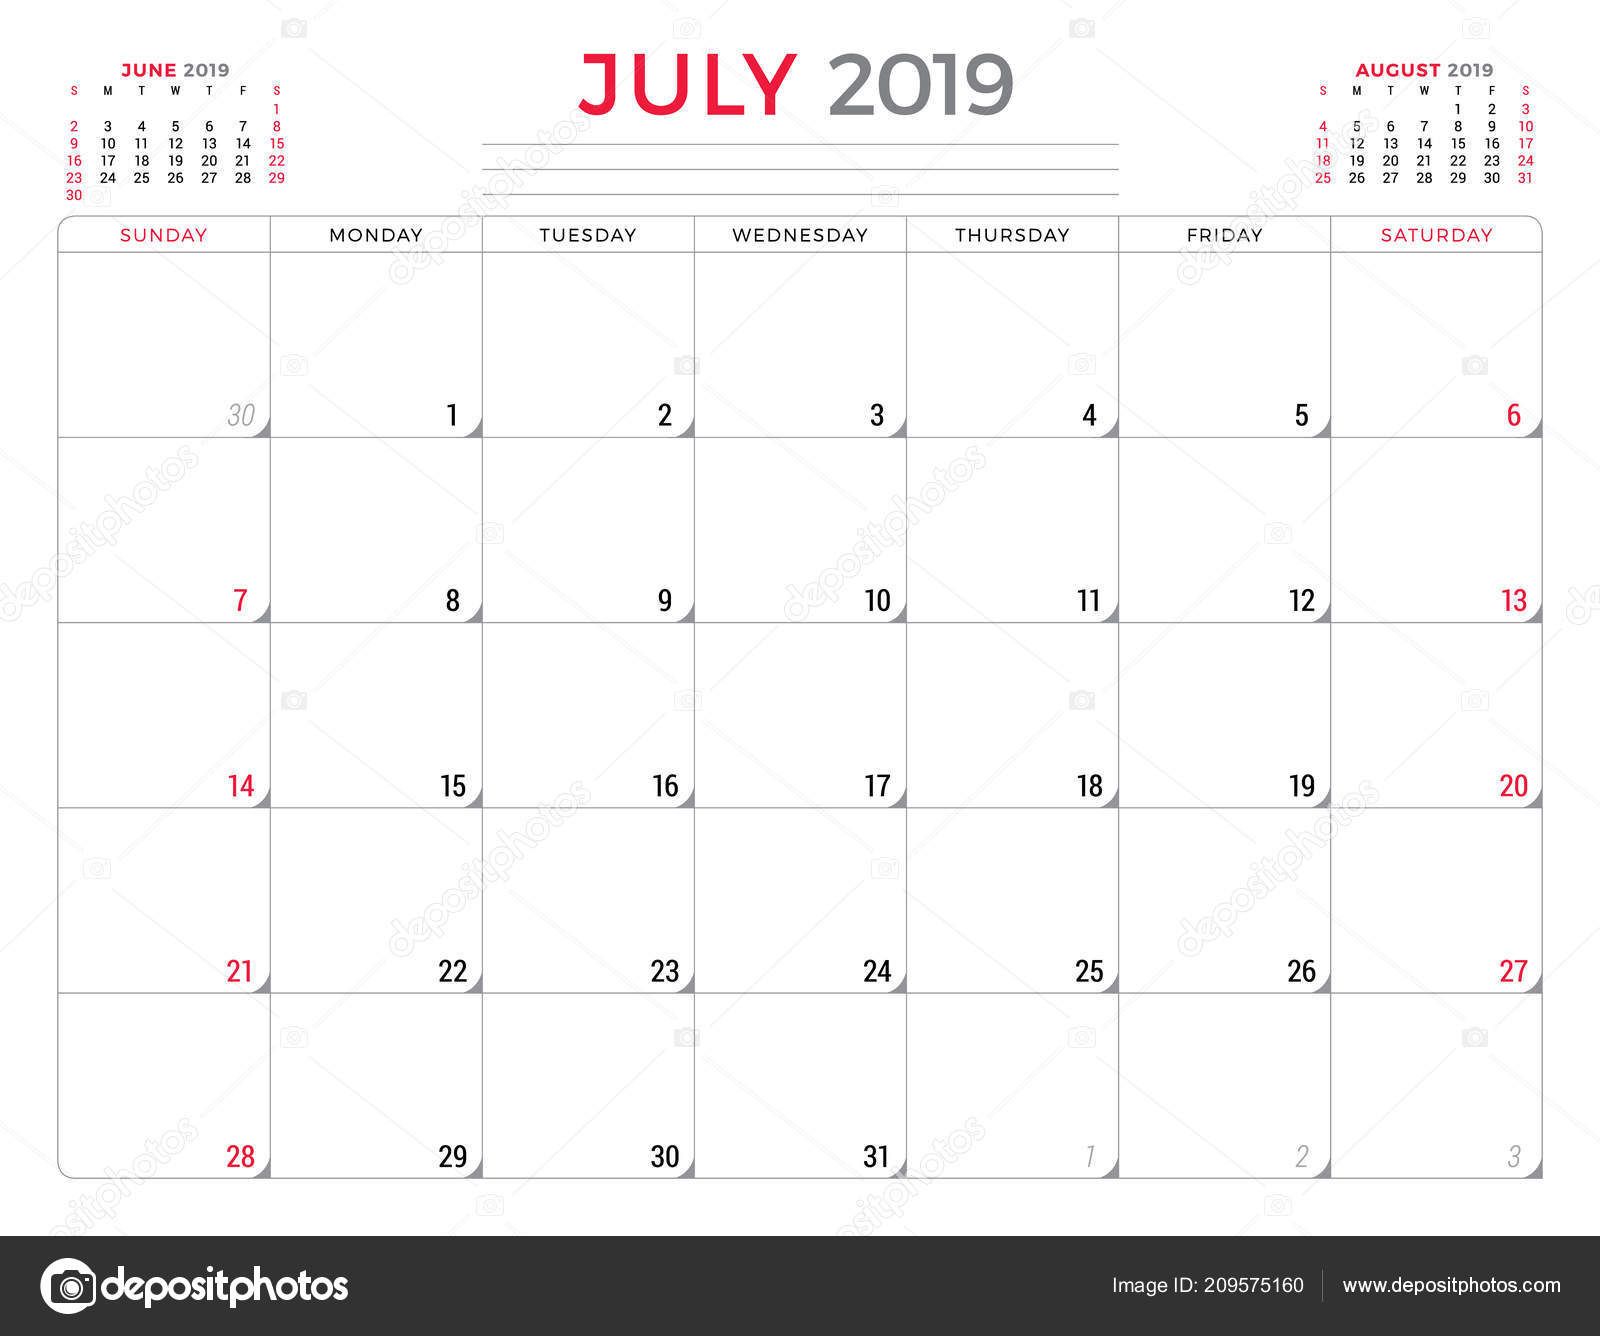 Calendario Julio 2019 Vector.July 2019 Calendar Planner Stationery Design Template Vector